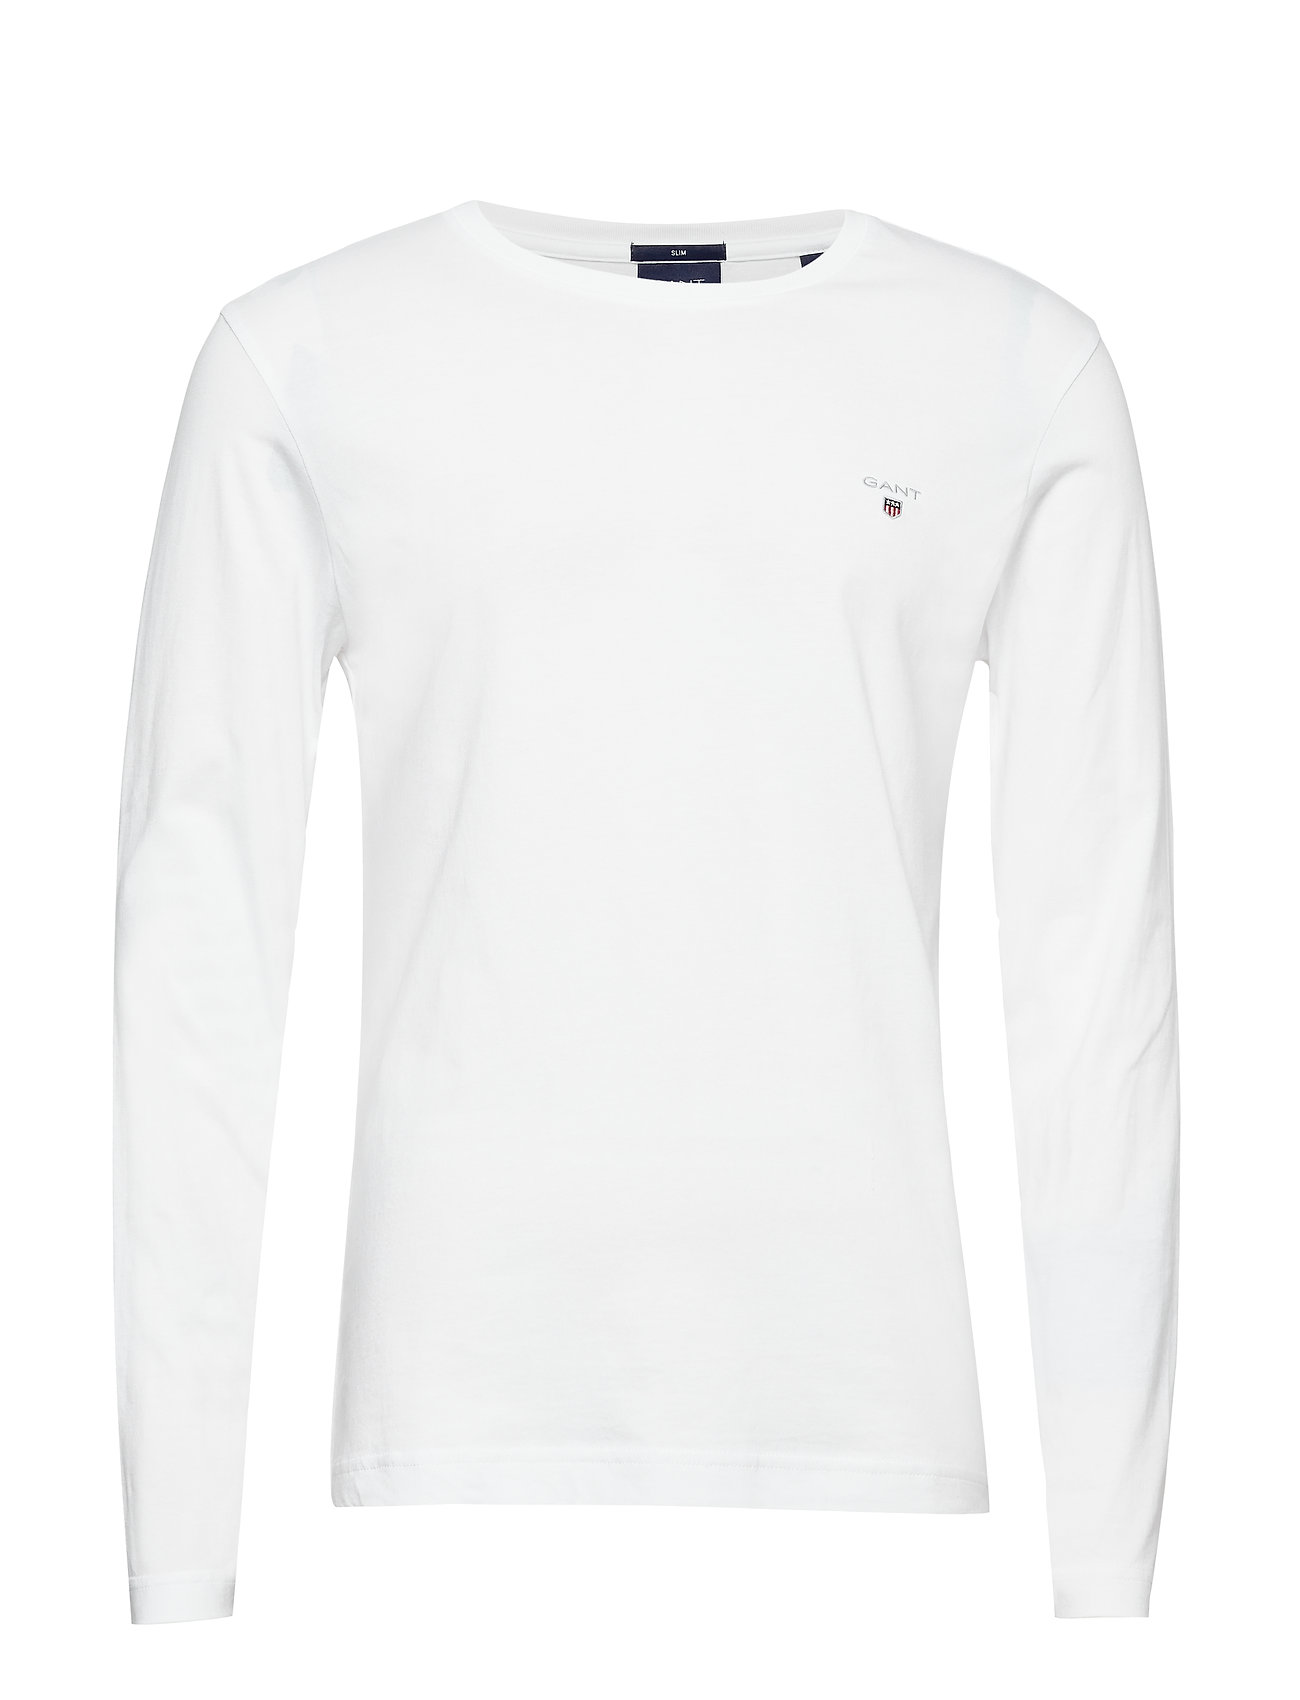 Gant THE ORIGINAL SLIM LS T-SHIRT - WHITE